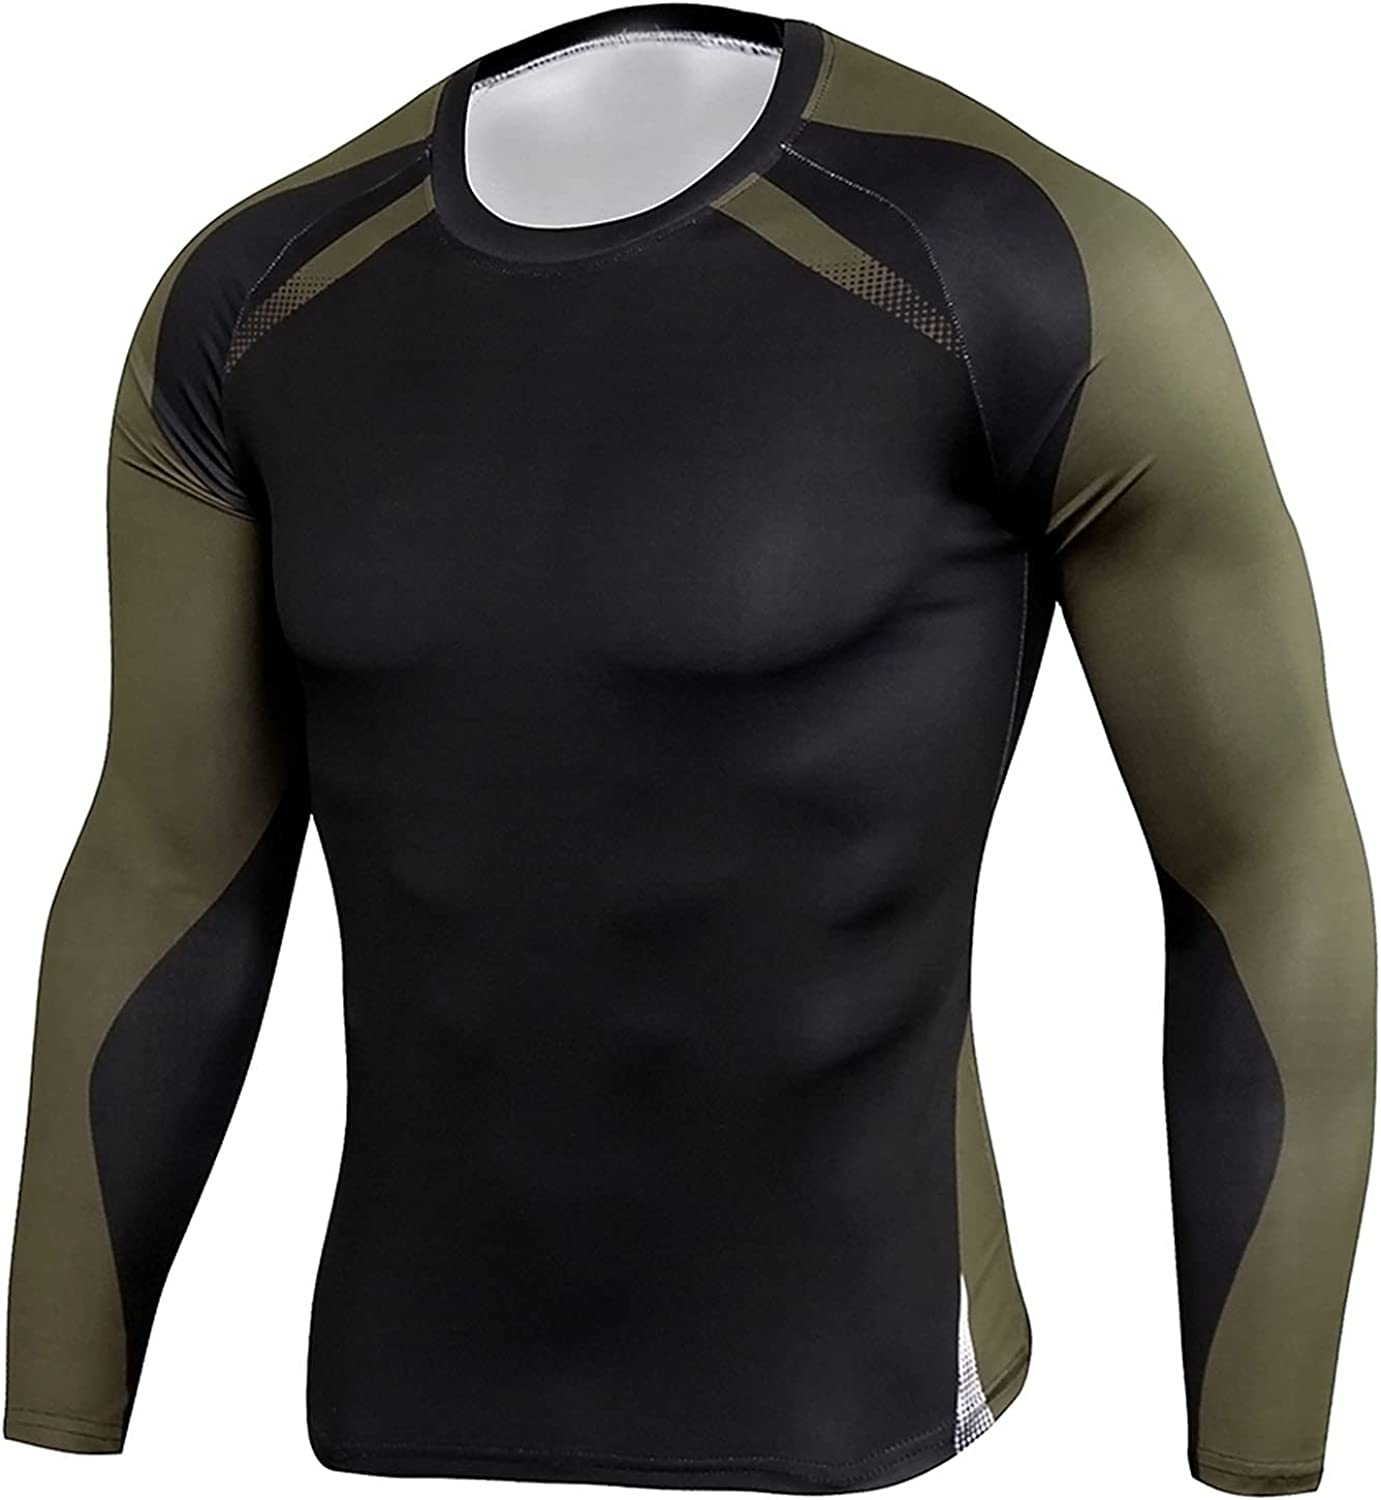 DZQUY Men's Quick Dry Compression Muscle Shirts Long Sleeve Casual Slim Fit Tops Outdoor Jogging Athletic Workout T Shirts